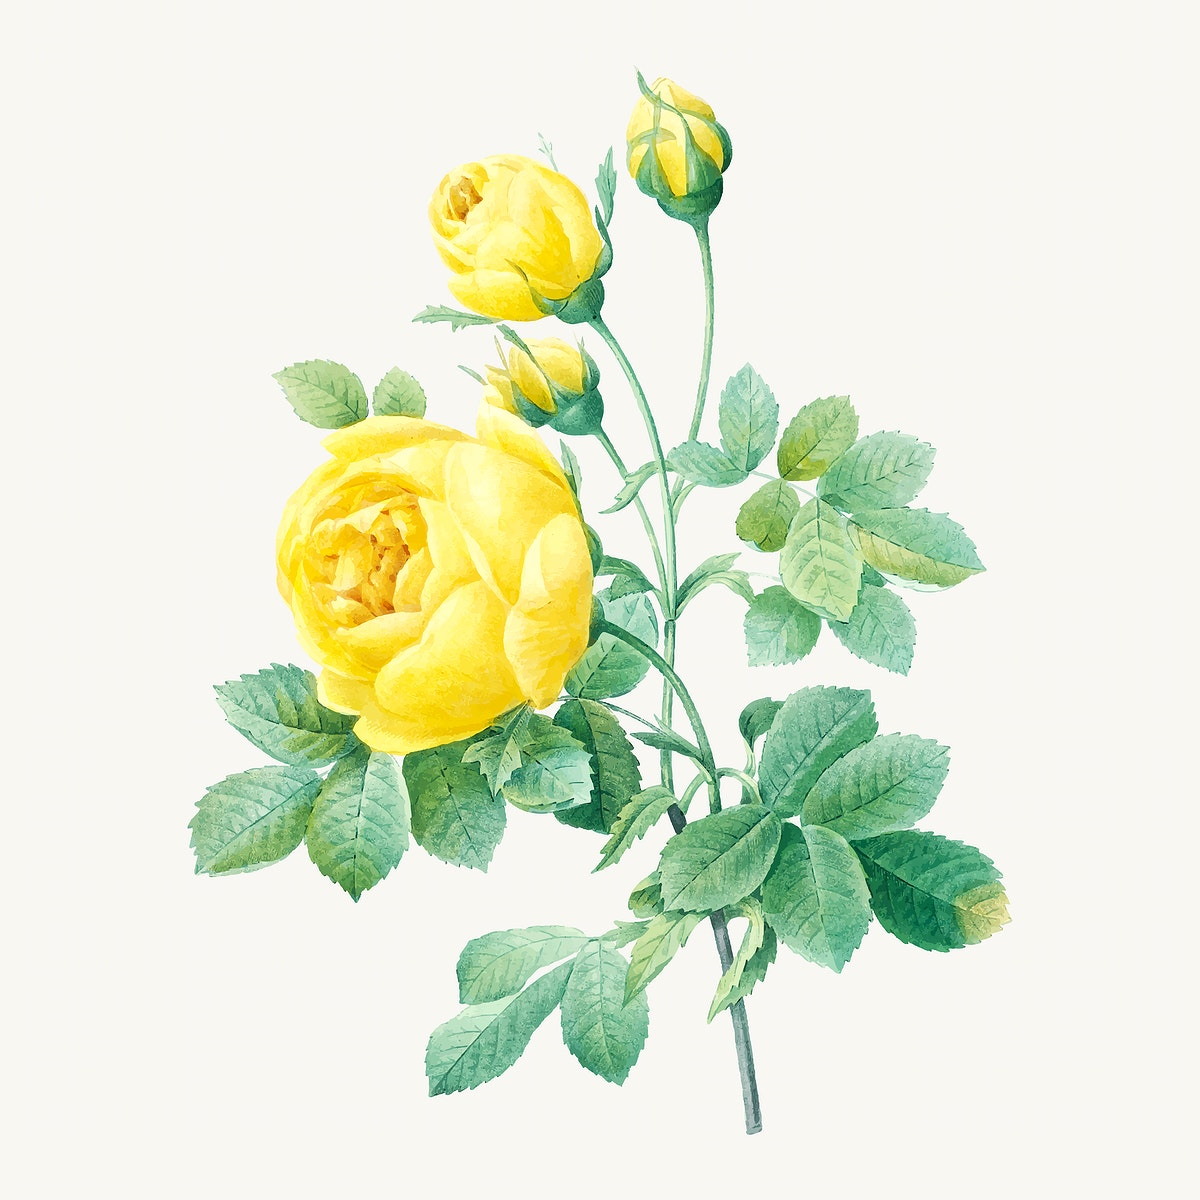 Yellow rose flower illustration vector, remixed from artworks by Pierre-Joseph Redouté